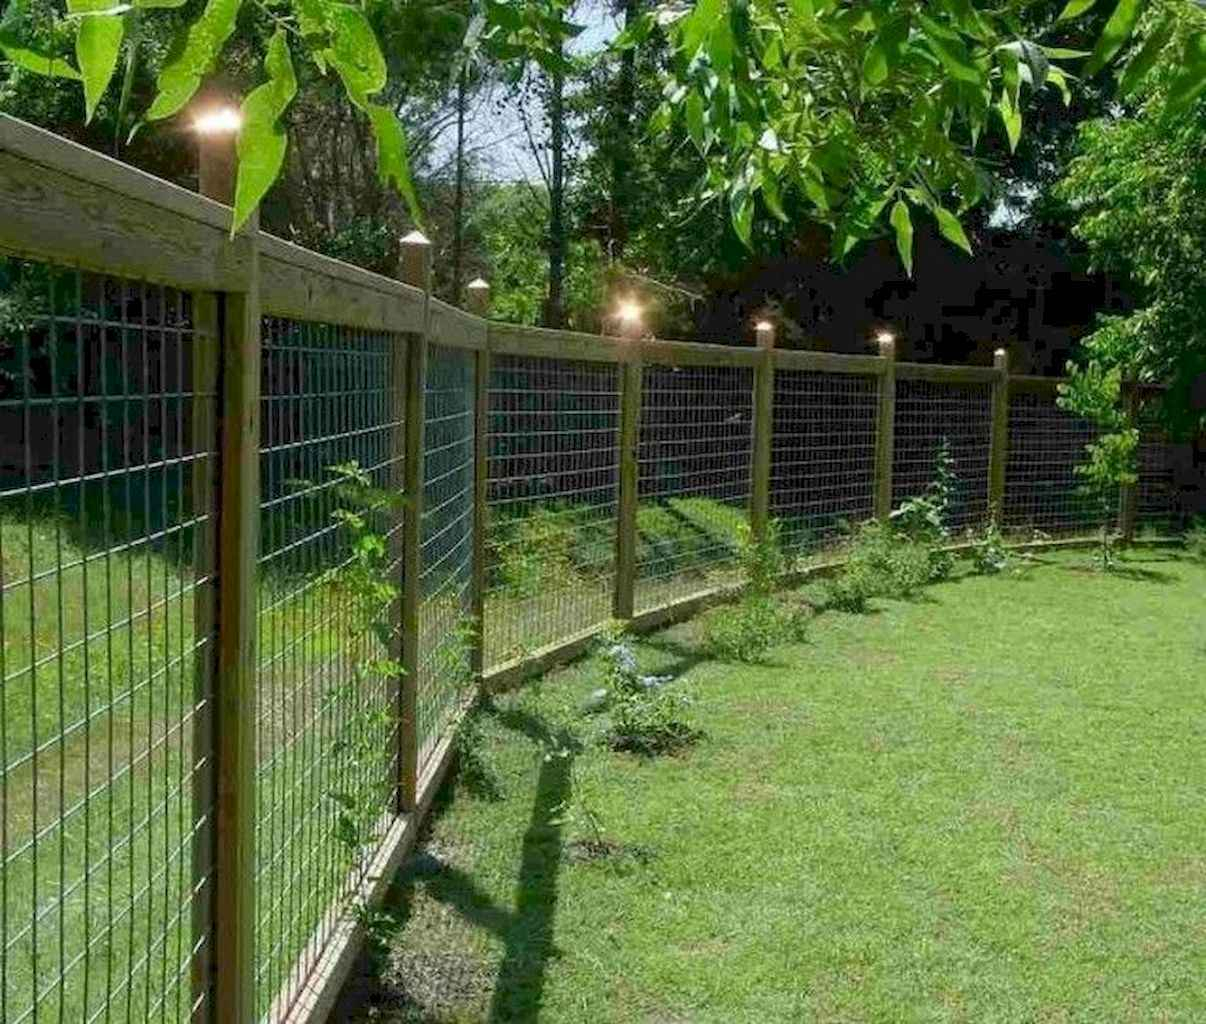 65 Diy Backyard Privacy Fence Design Ideas On A Budget with 14 Awesome Initiatives of How to Craft Privacy Backyard Ideas